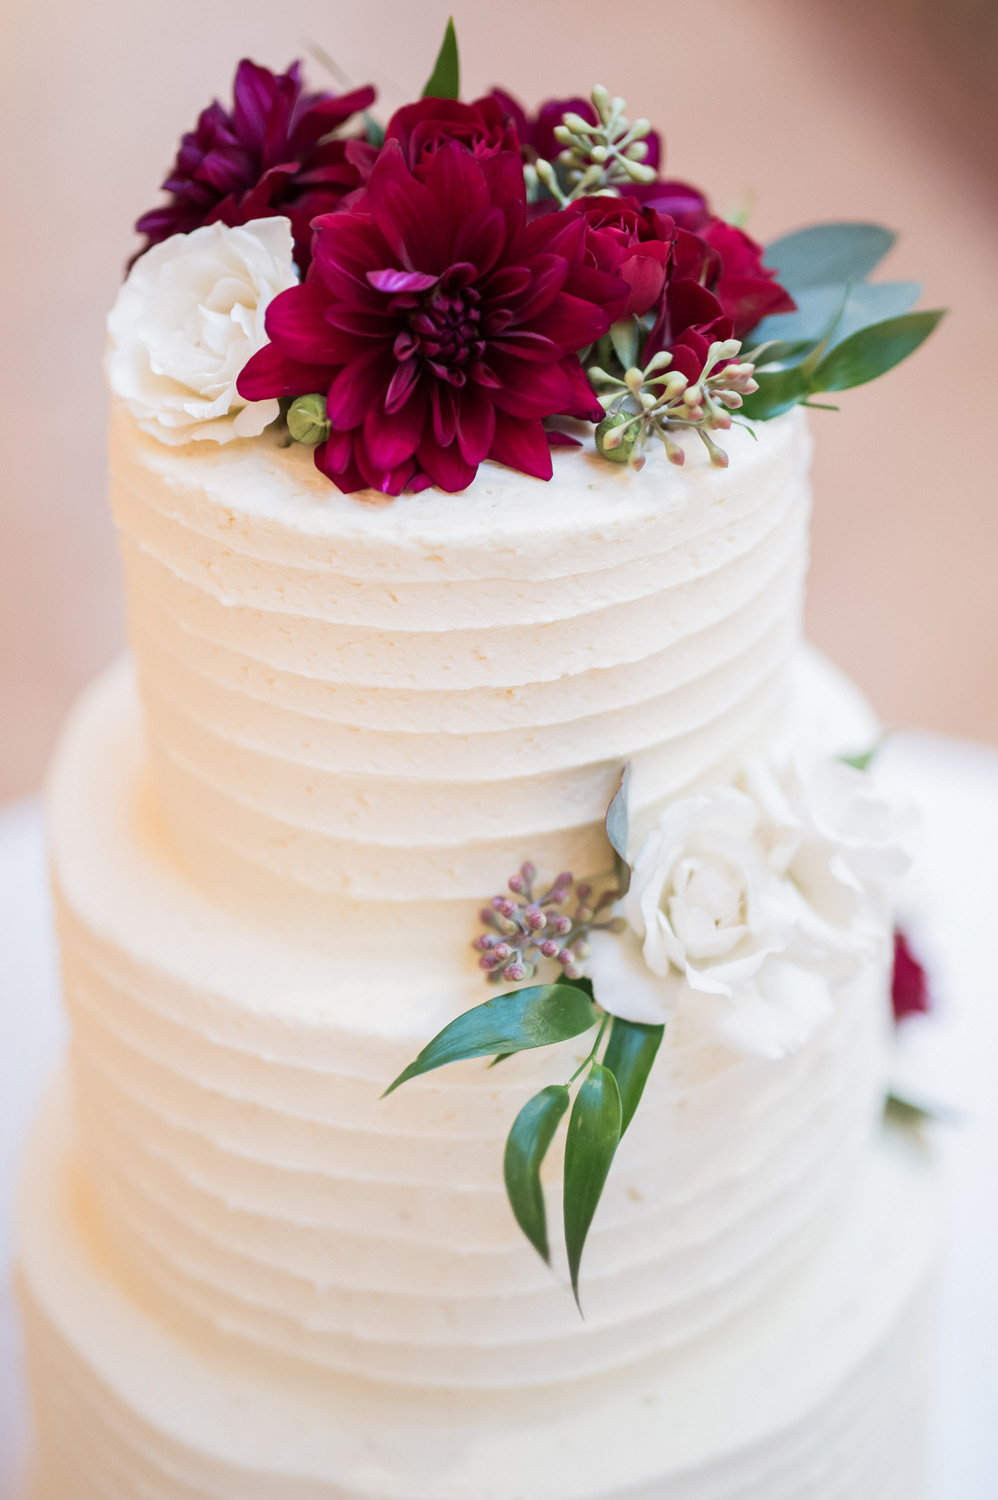 Detail shot of wedding cake.